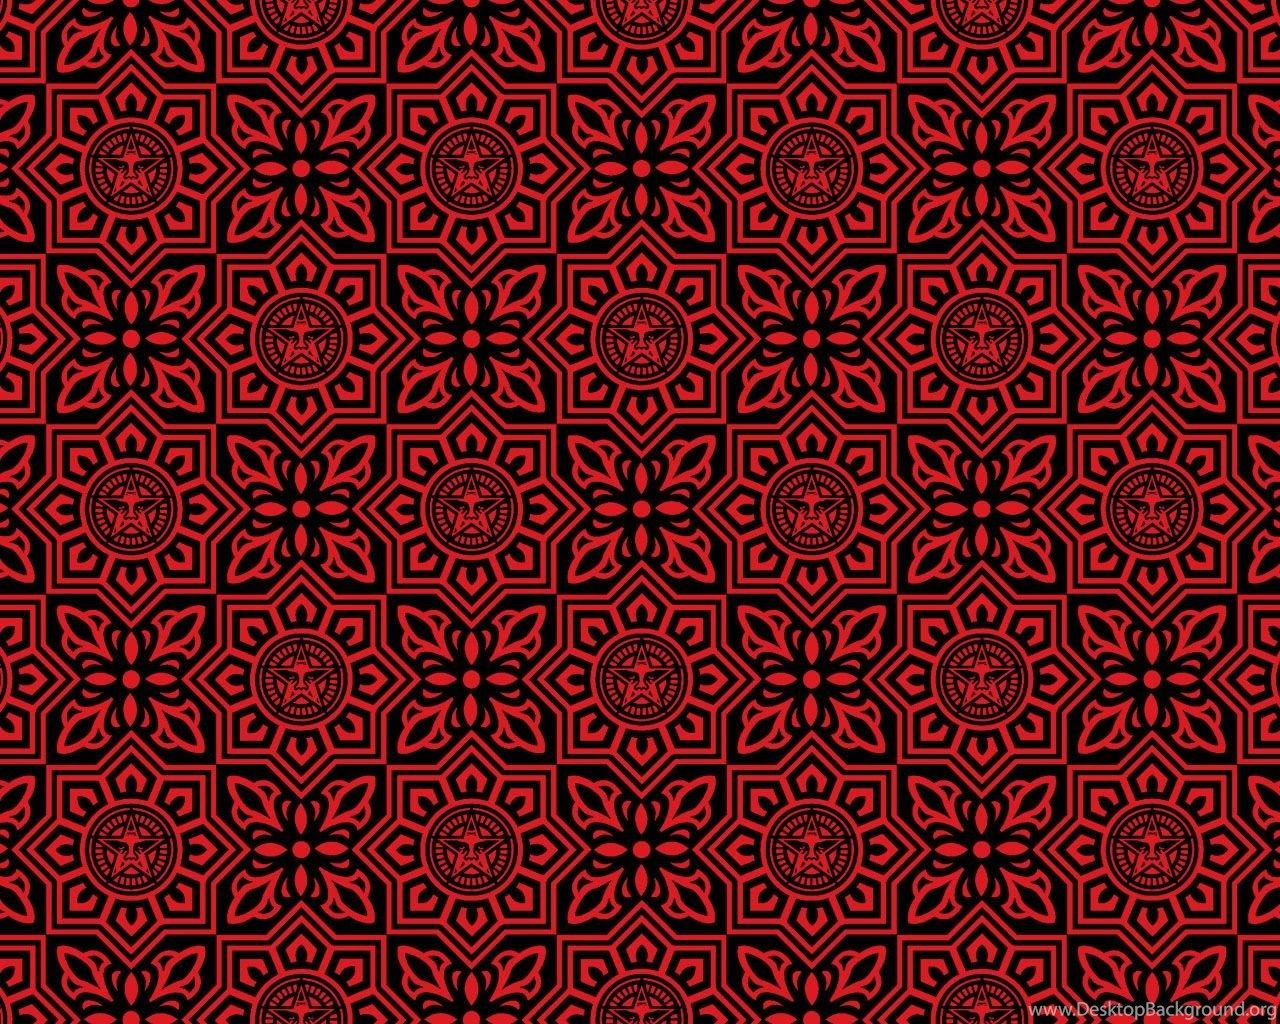 Obey Supreme Iphone Wallpapers Top Free Obey Supreme Iphone